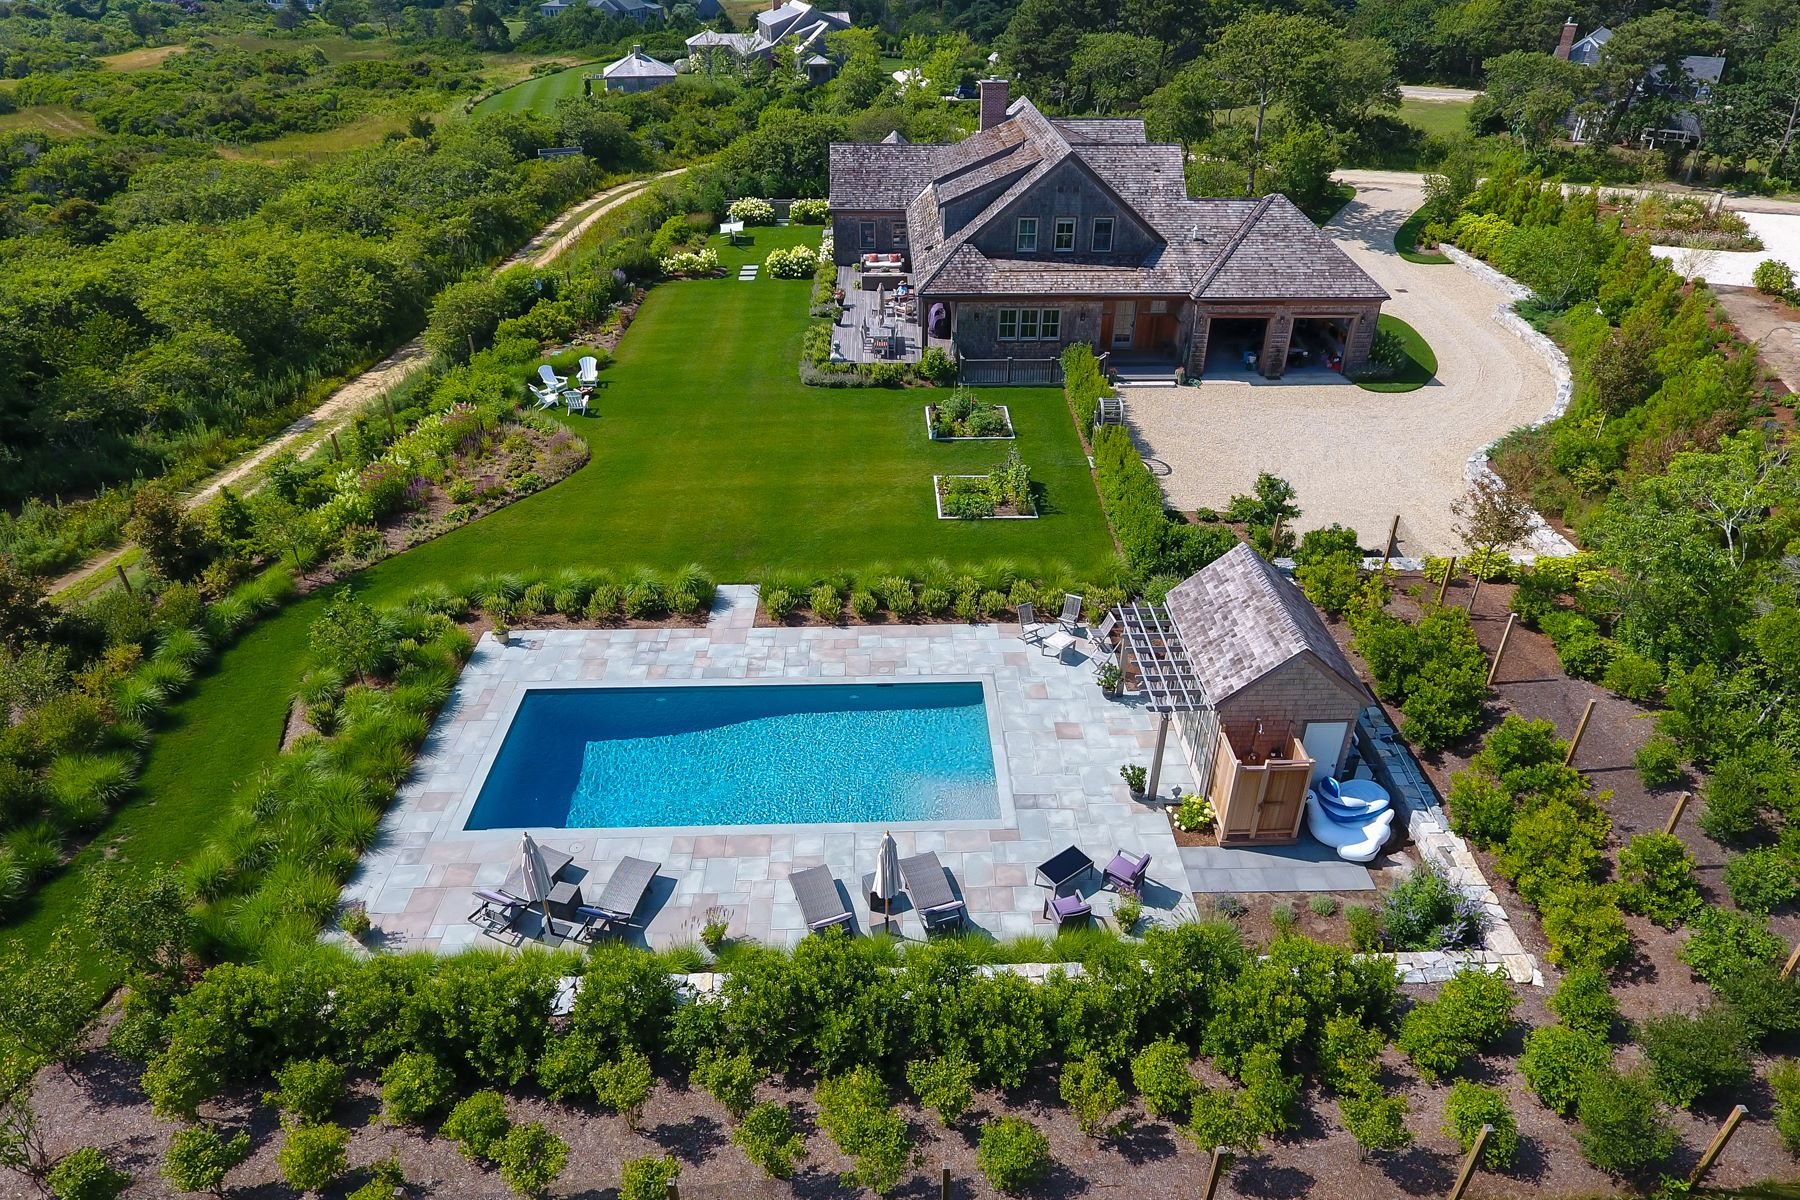 Casa Unifamiliar por un Venta en Sophisticated Two Acre Estate 8 Hickory Meadow Lane Nantucket, Massachusetts, 02554 Estados Unidos